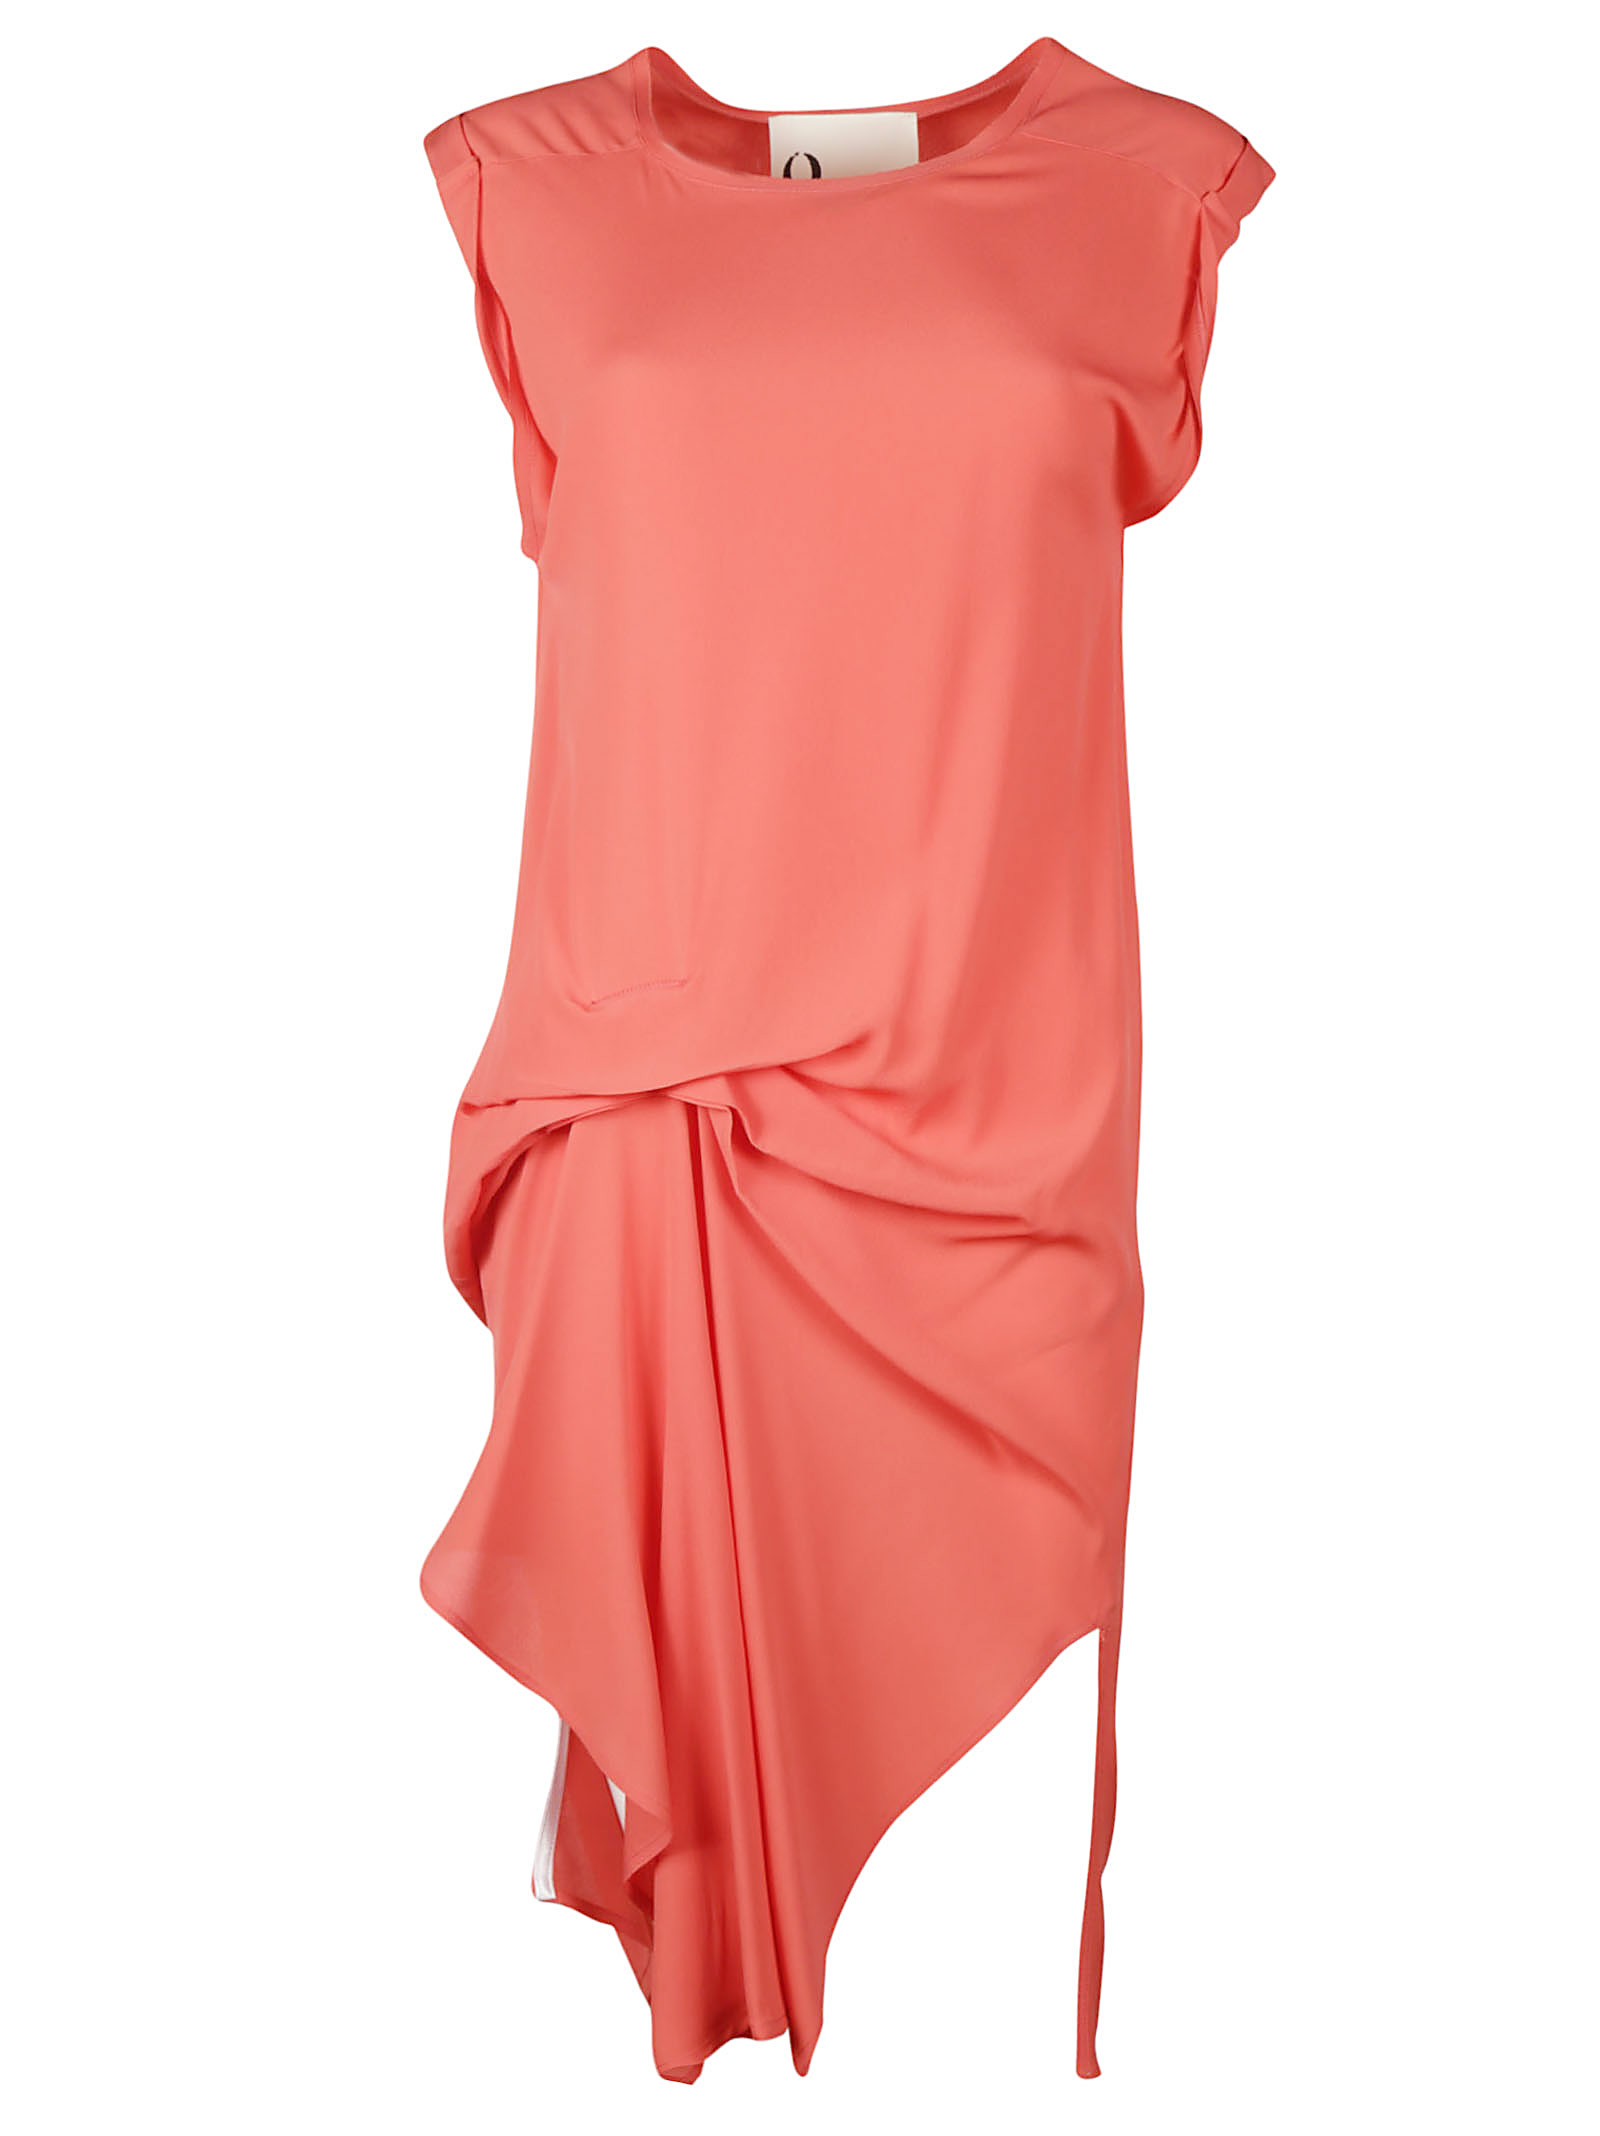 8PM Draped Detail Fitted Dress